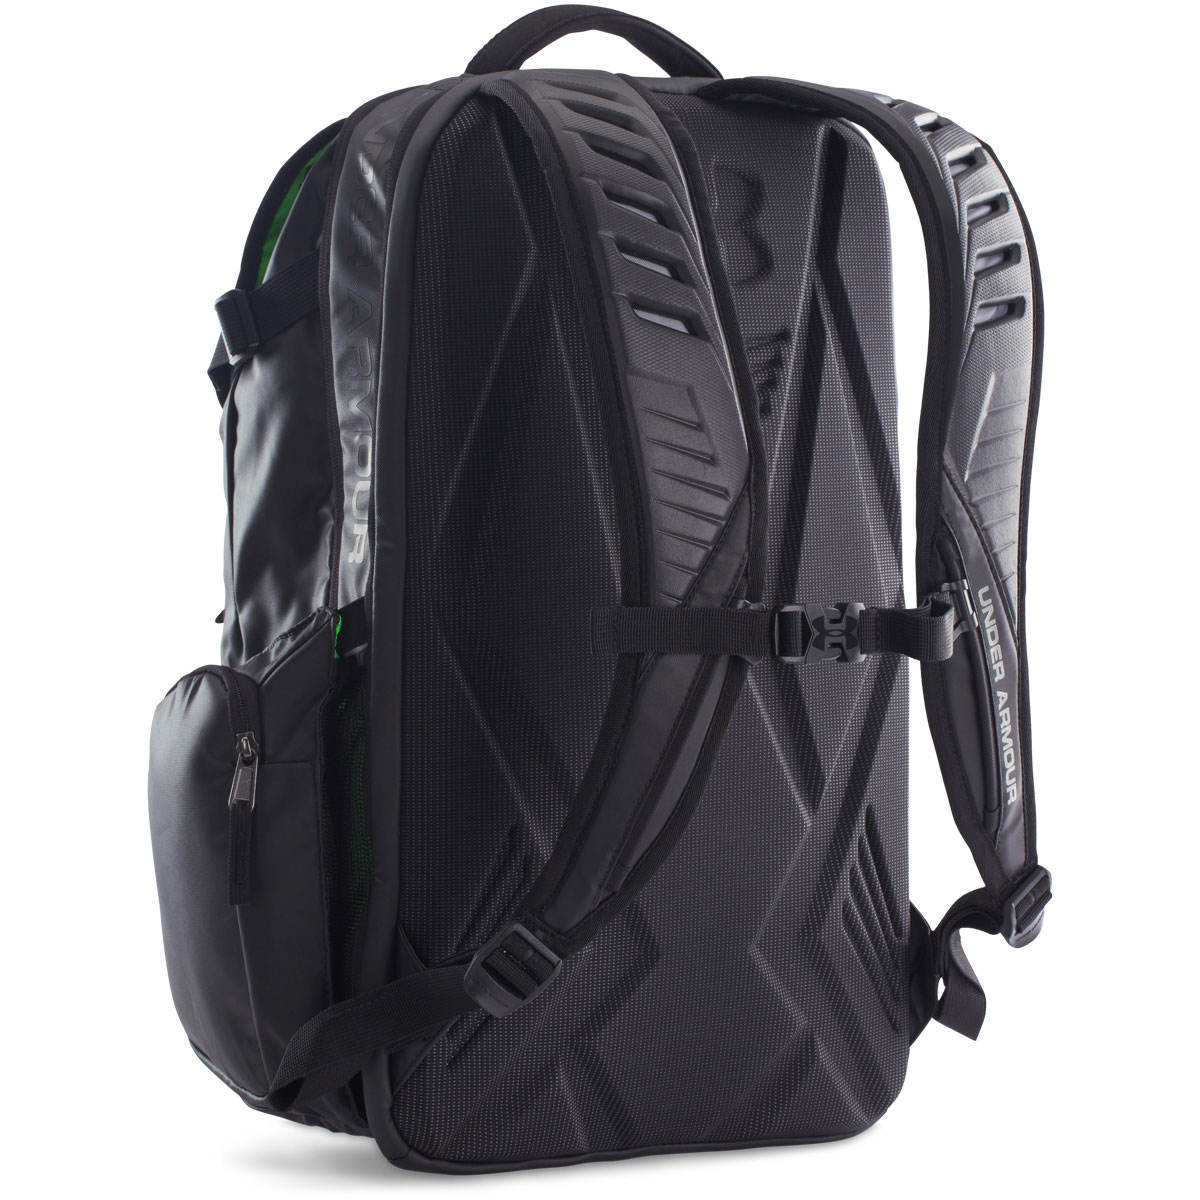 Under Armour 2015 UA Storm Coalition Backpack Rucksack Sports School ... 15a0bd4b67363